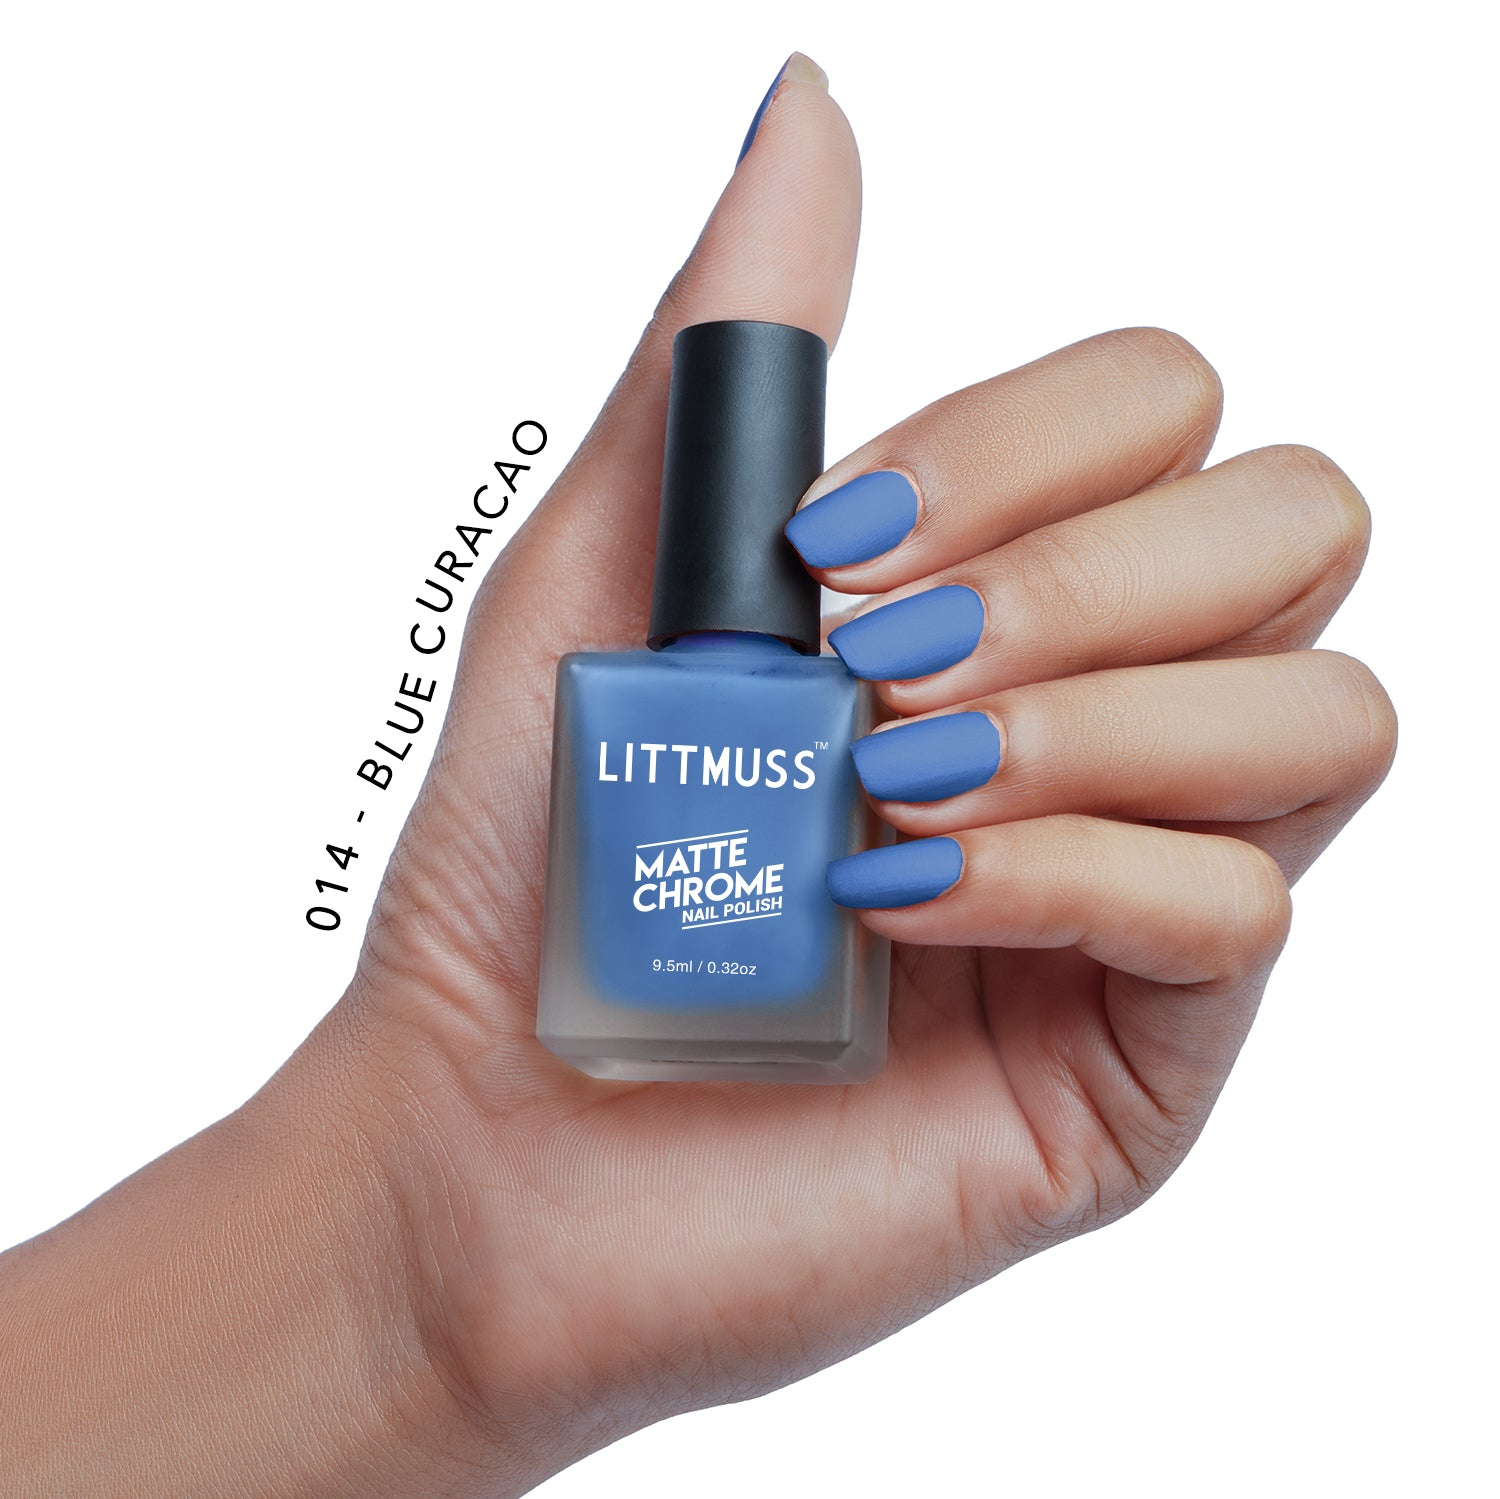 LITTMUSS Matte Chrome Nail Polish Blue Curacao -014